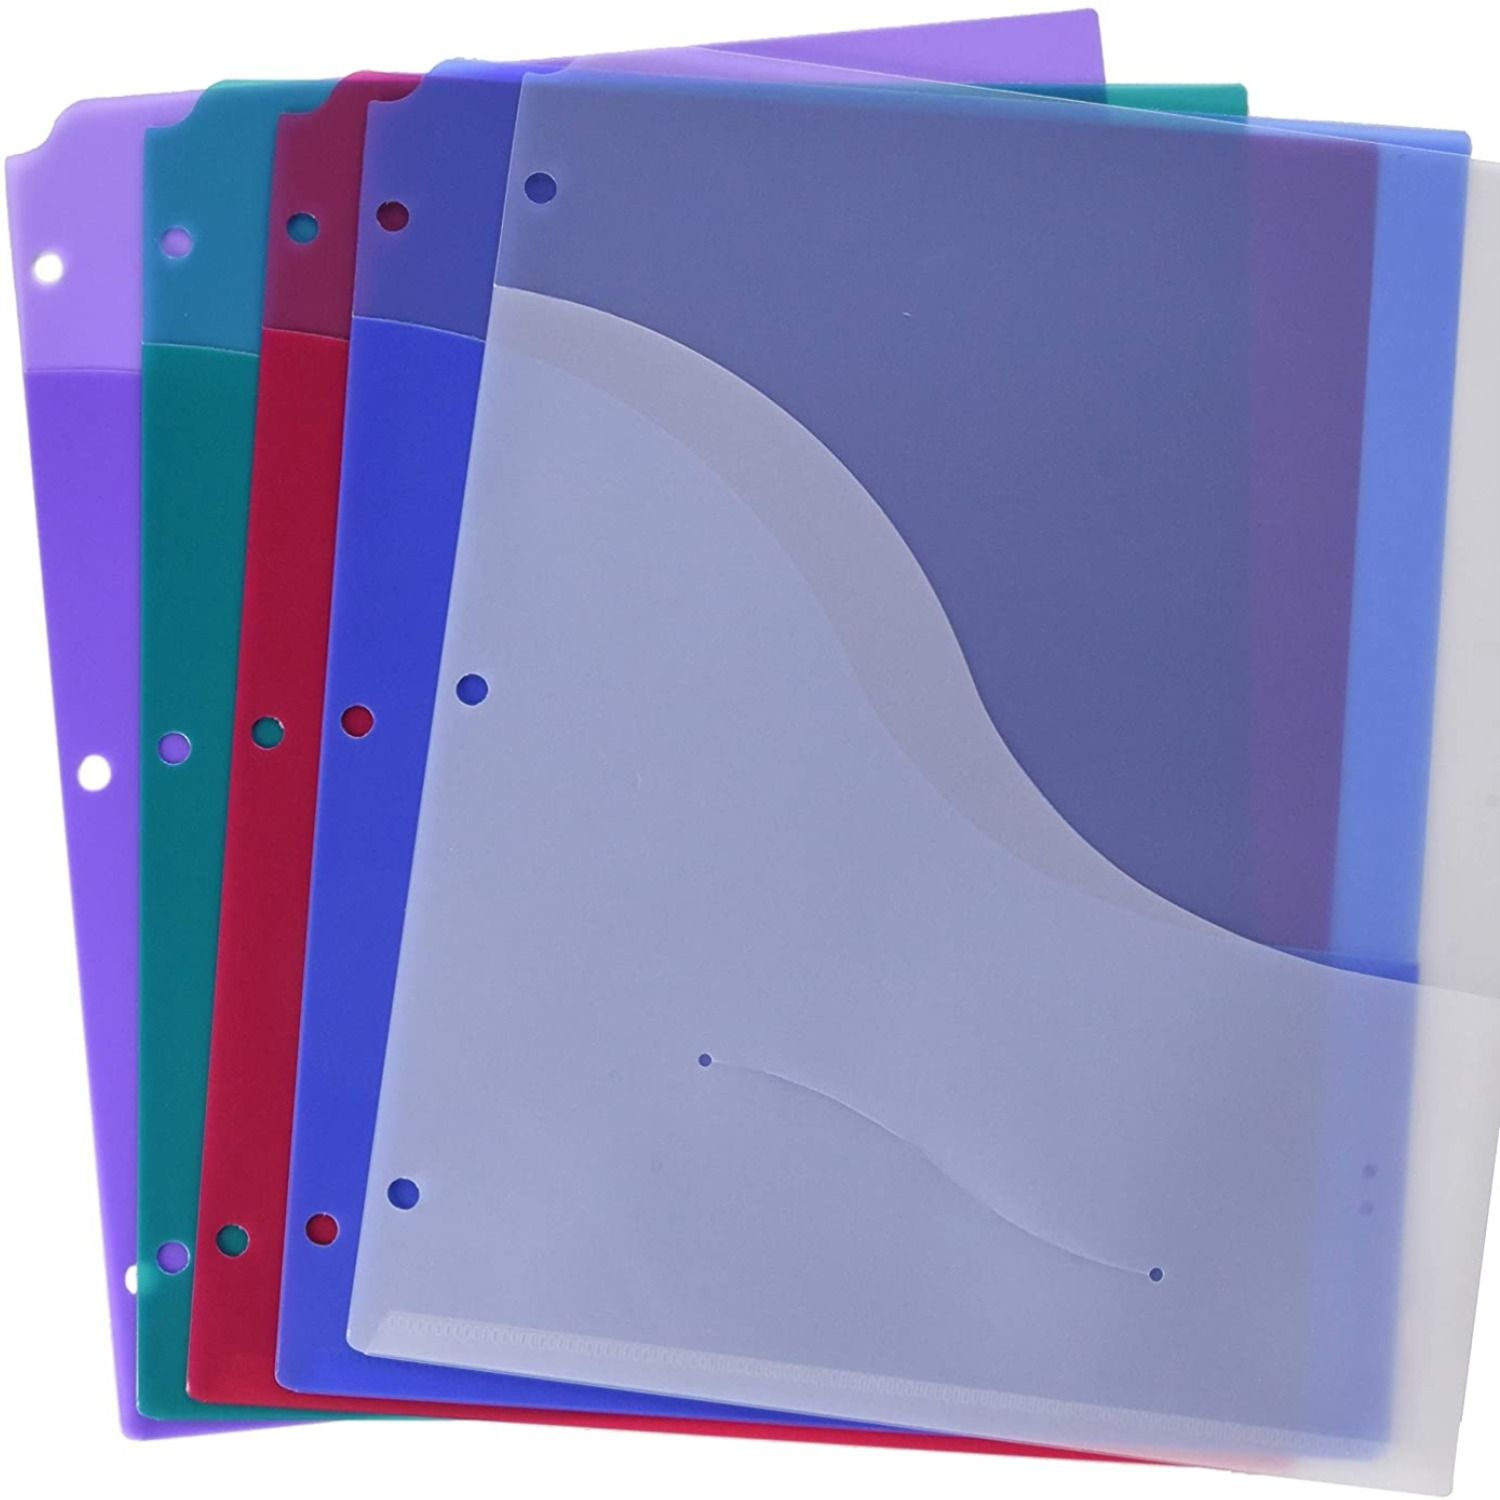 School Smart Poly Binder Pocket Divider 8 1 2 X 11 Inches Assorted Colors Pack Of 5 In 2020 Binder Pockets Ring Binder Vinyl Cover